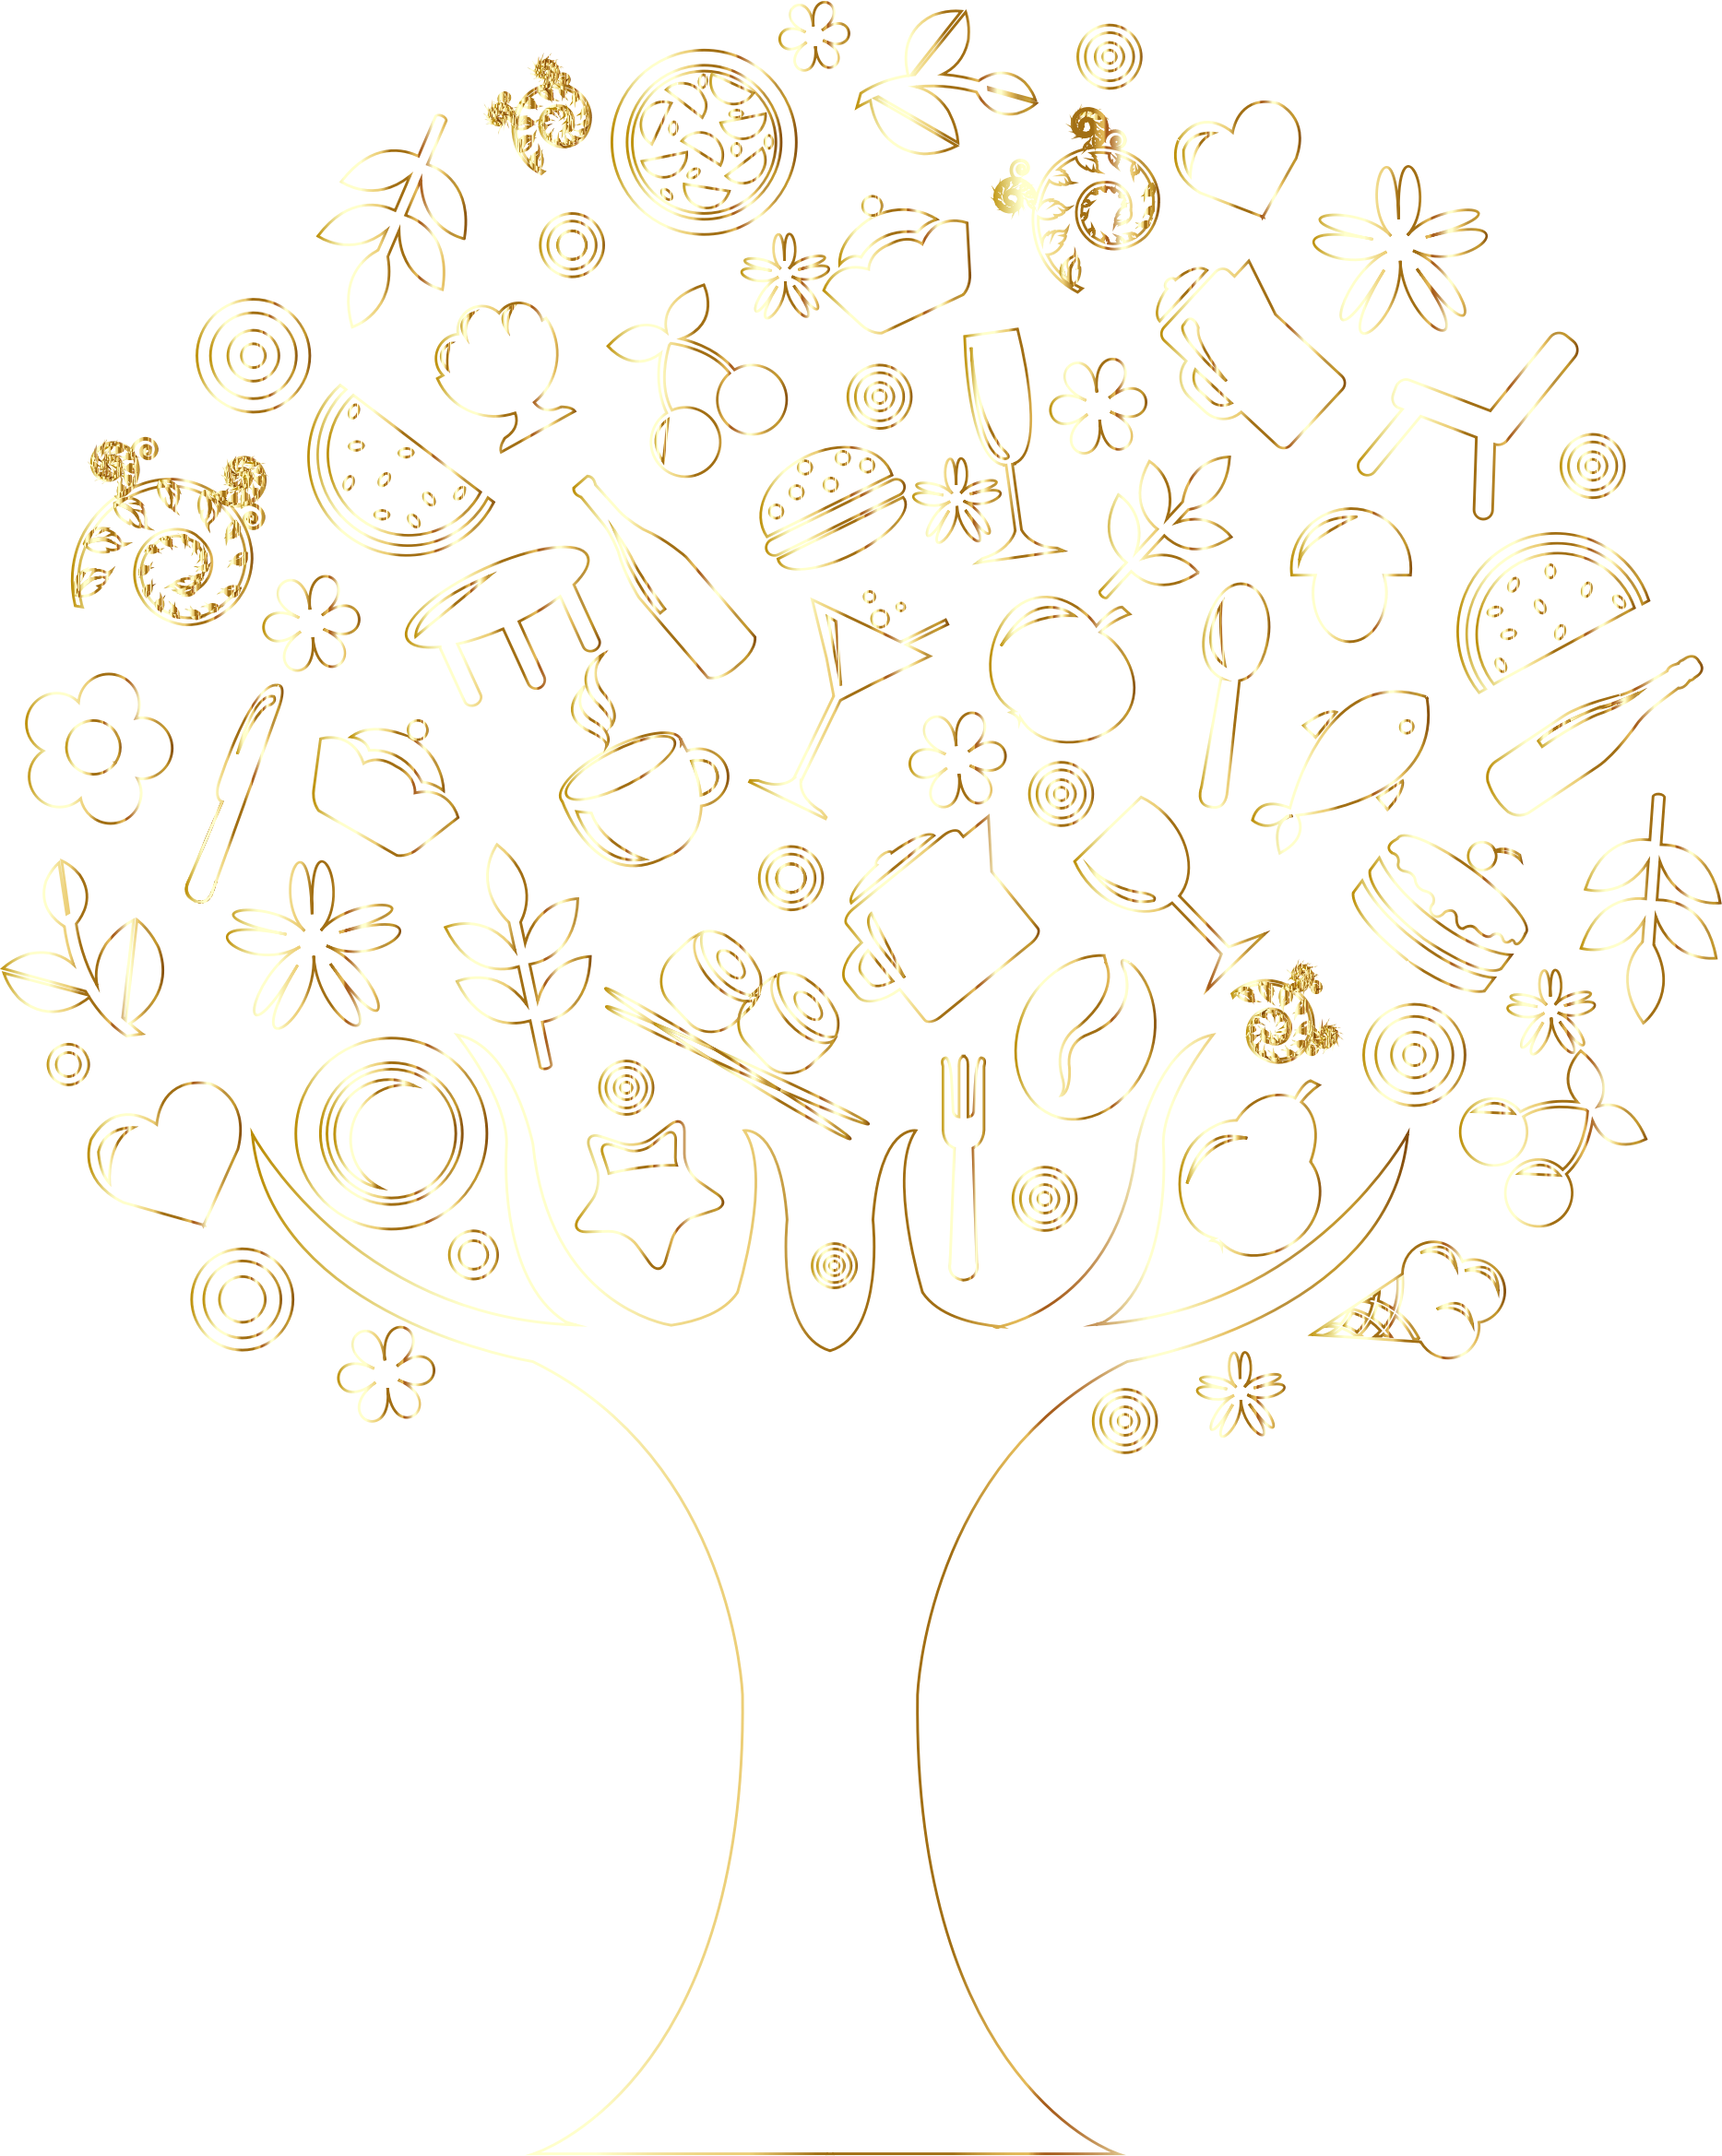 Gold Outline Abstract Tree No Background by GDJ